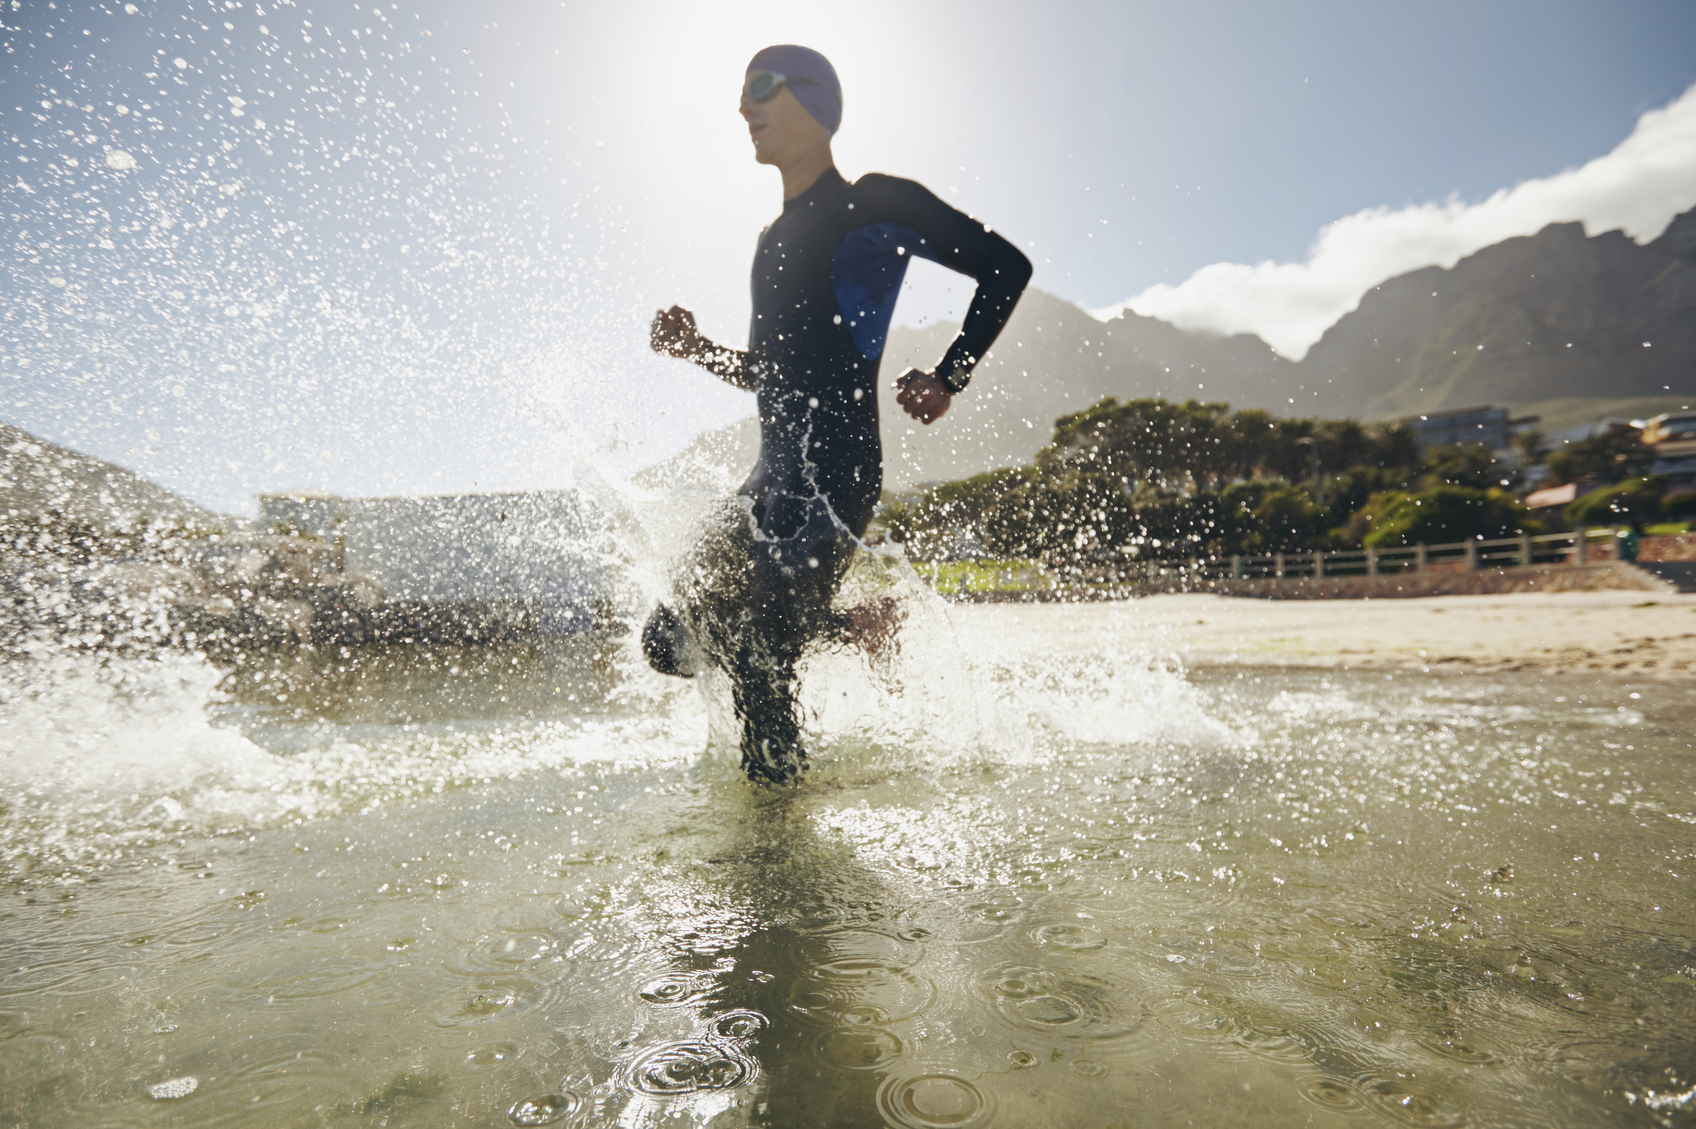 wetsuitarticle